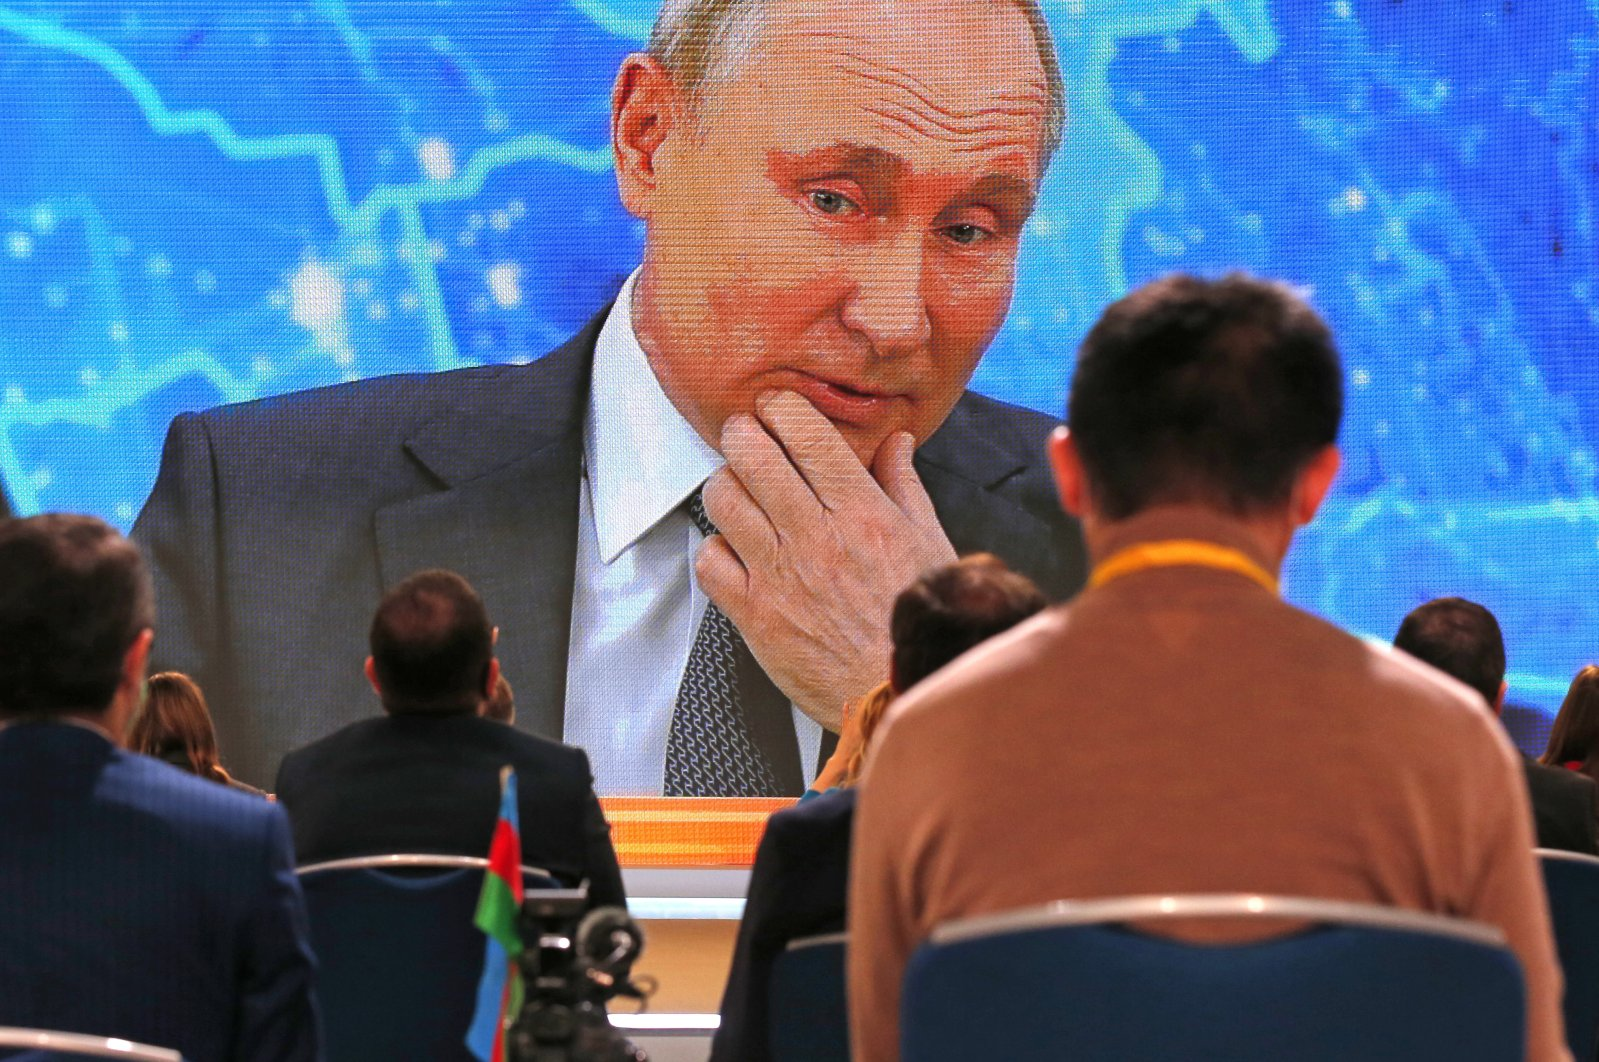 Russian President Vladimir Putin speaks via video call during a news conference in Moscow, Russia, Dec. 17, 2020. (AP Photo)